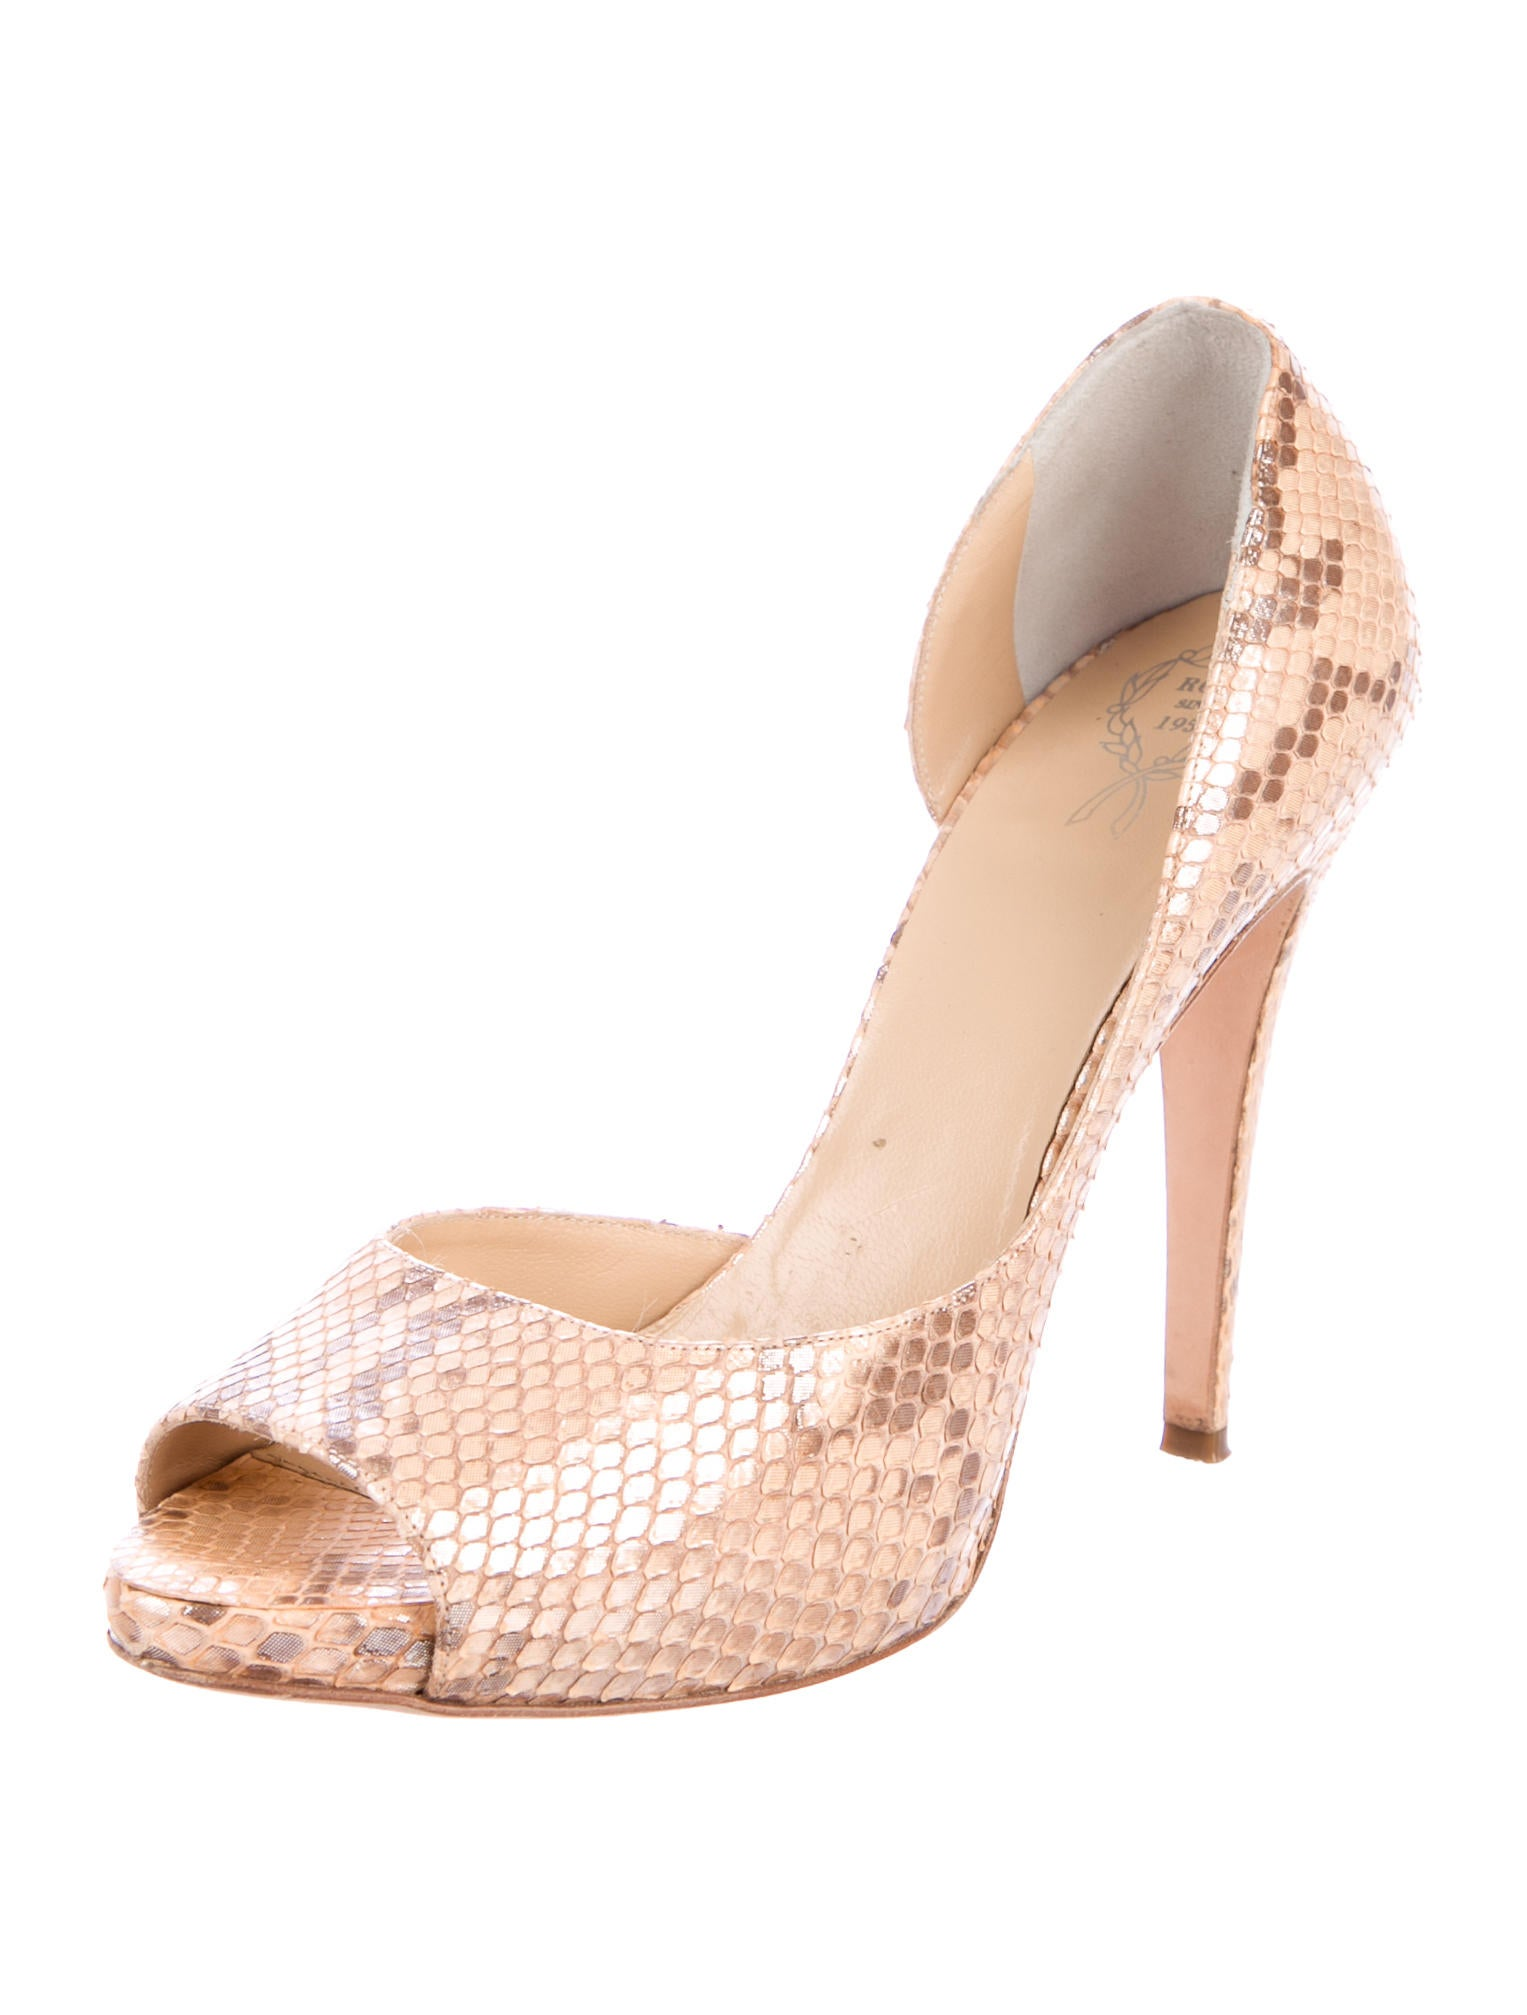 Rodo Snakeskin Peep-Toe Pumps outlet clearance store outlet fast delivery discount sale online outlet cheap prices footlocker pictures online BGgpFhVu